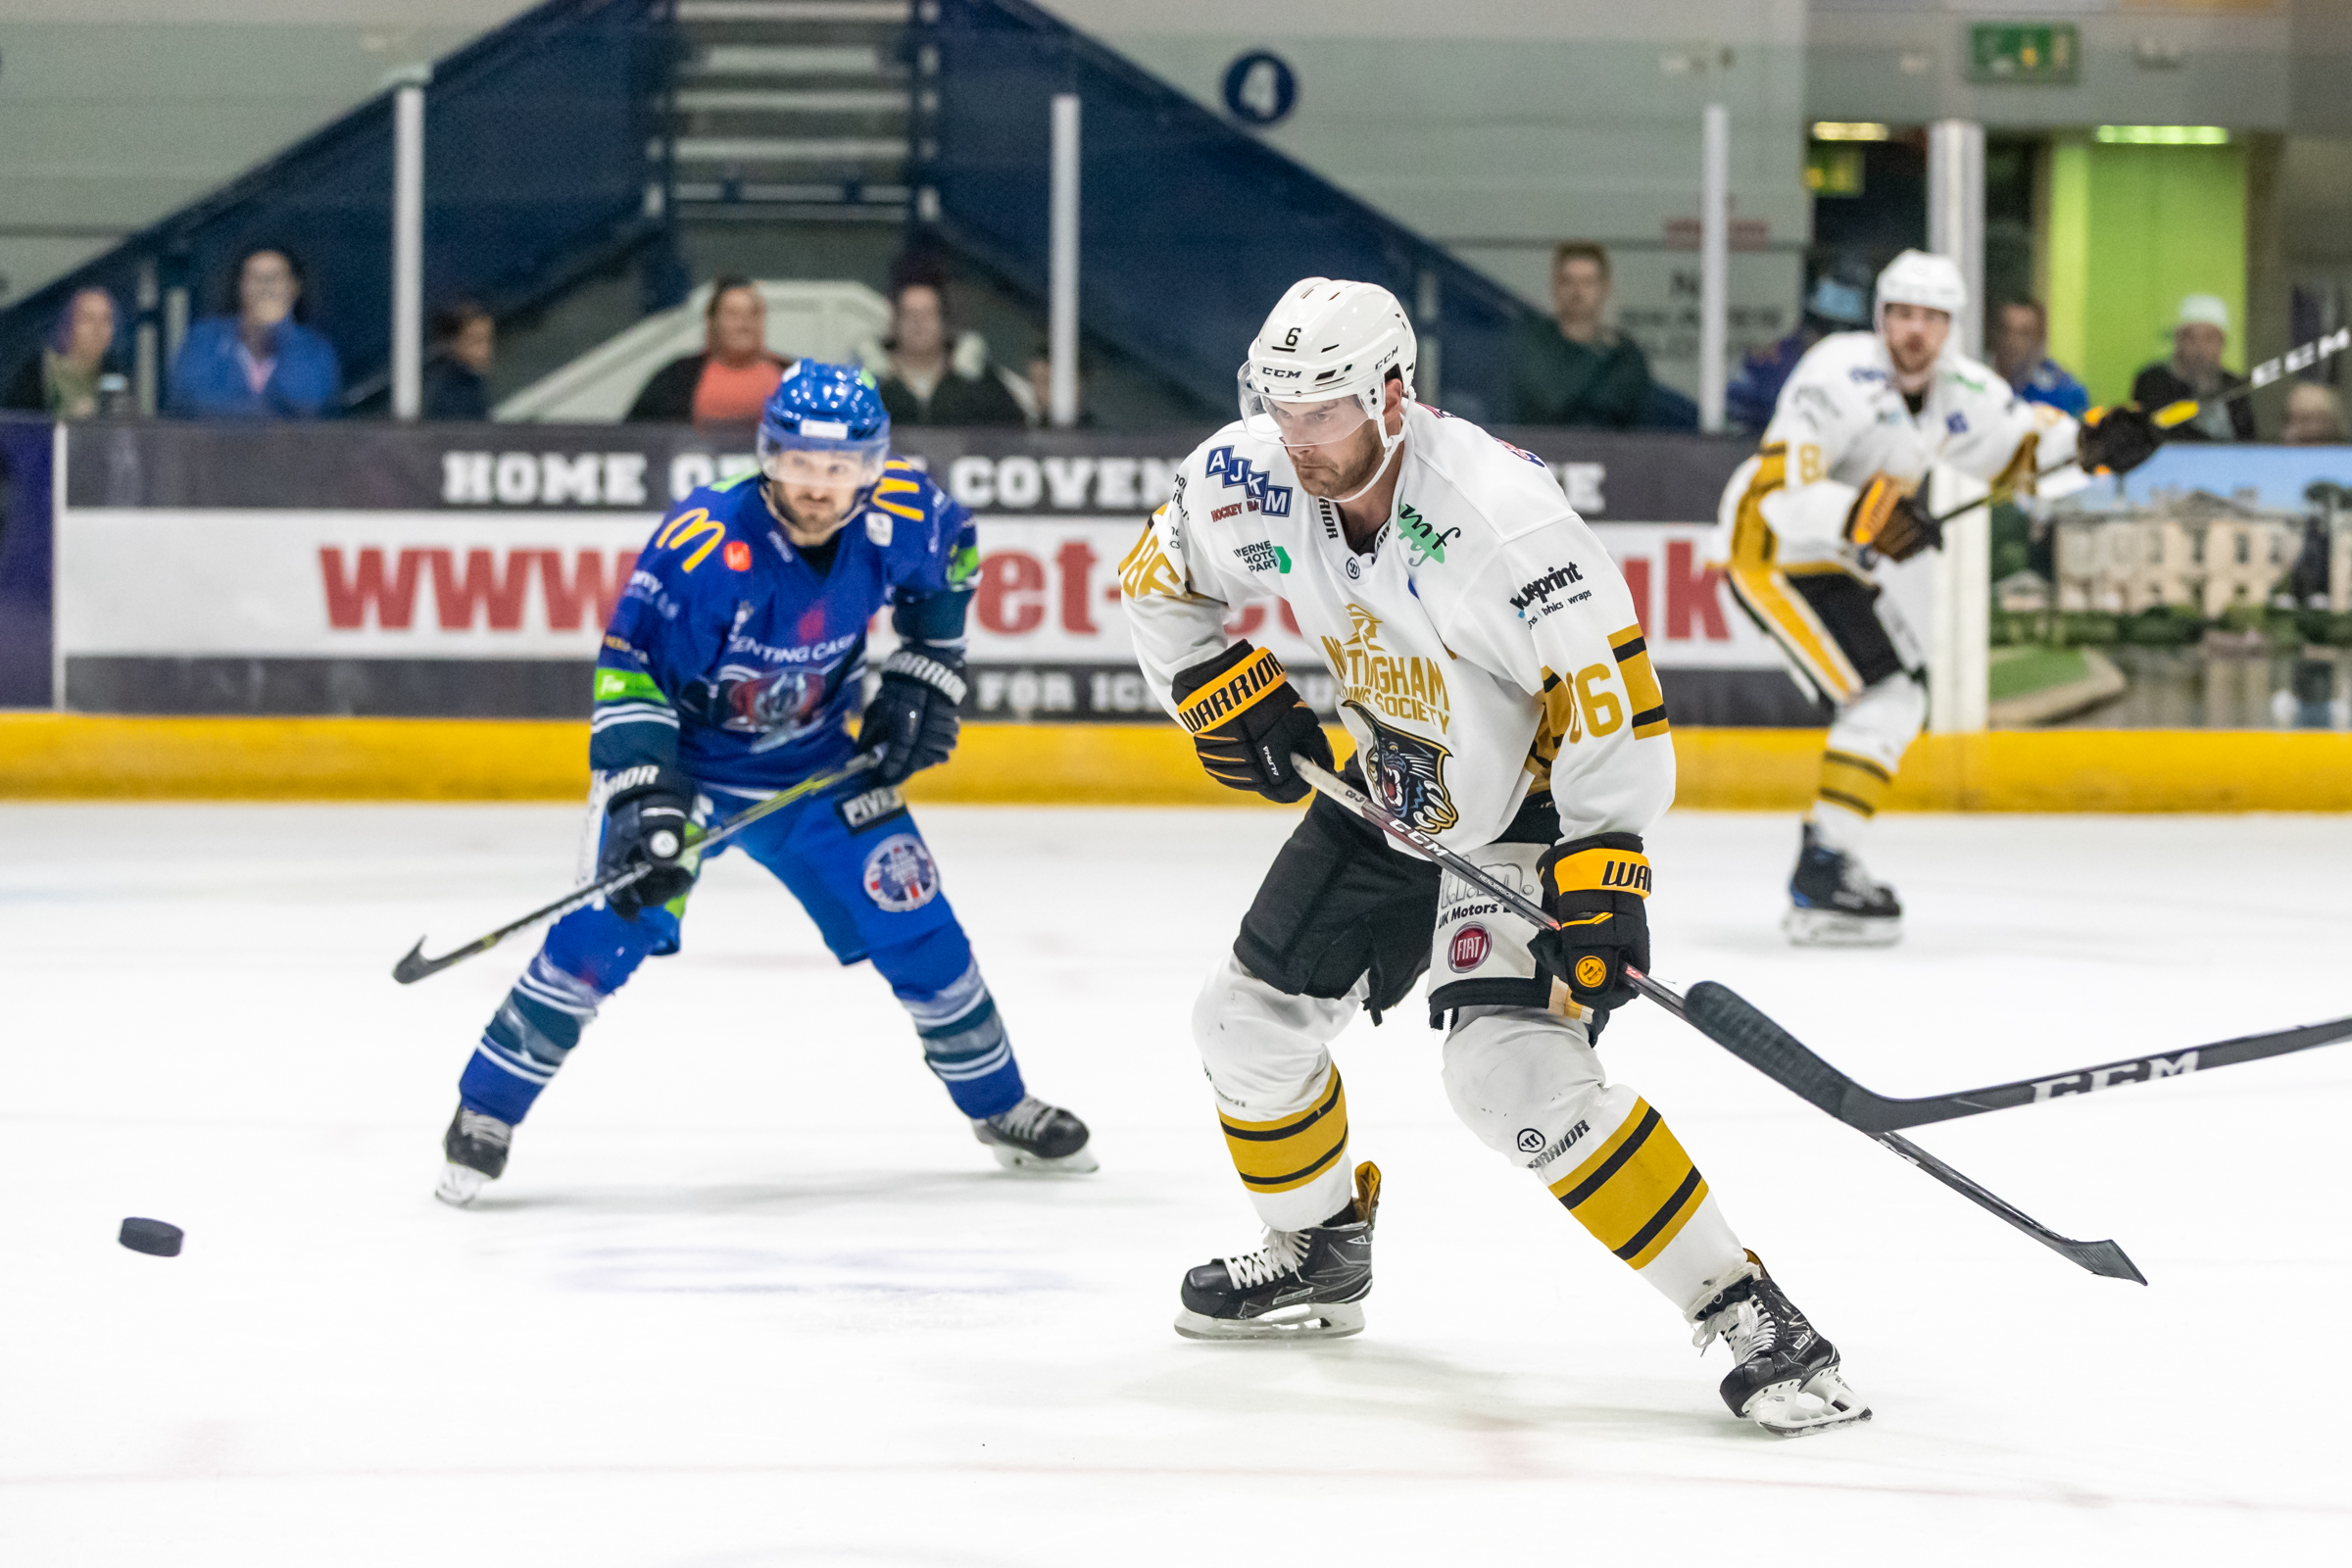 Panthers vs Coventry: Saturday at 7pm Top Image